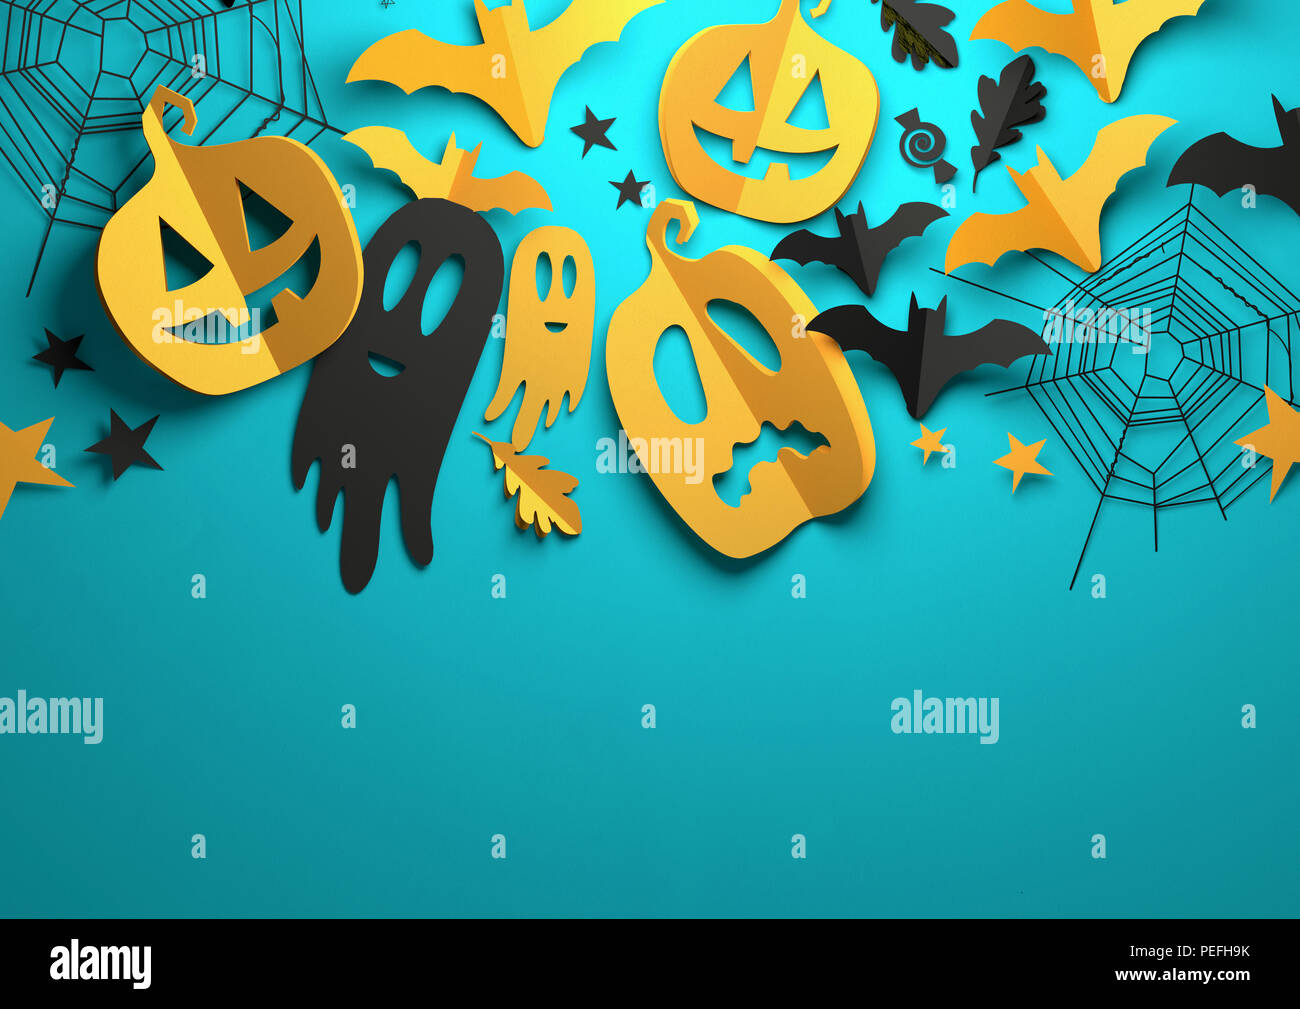 Folded Paper art origami. Halloween background with cut out pumpkins, paper bats, ghosts and other decorations with room for text. 3D illustration. - Stock Image